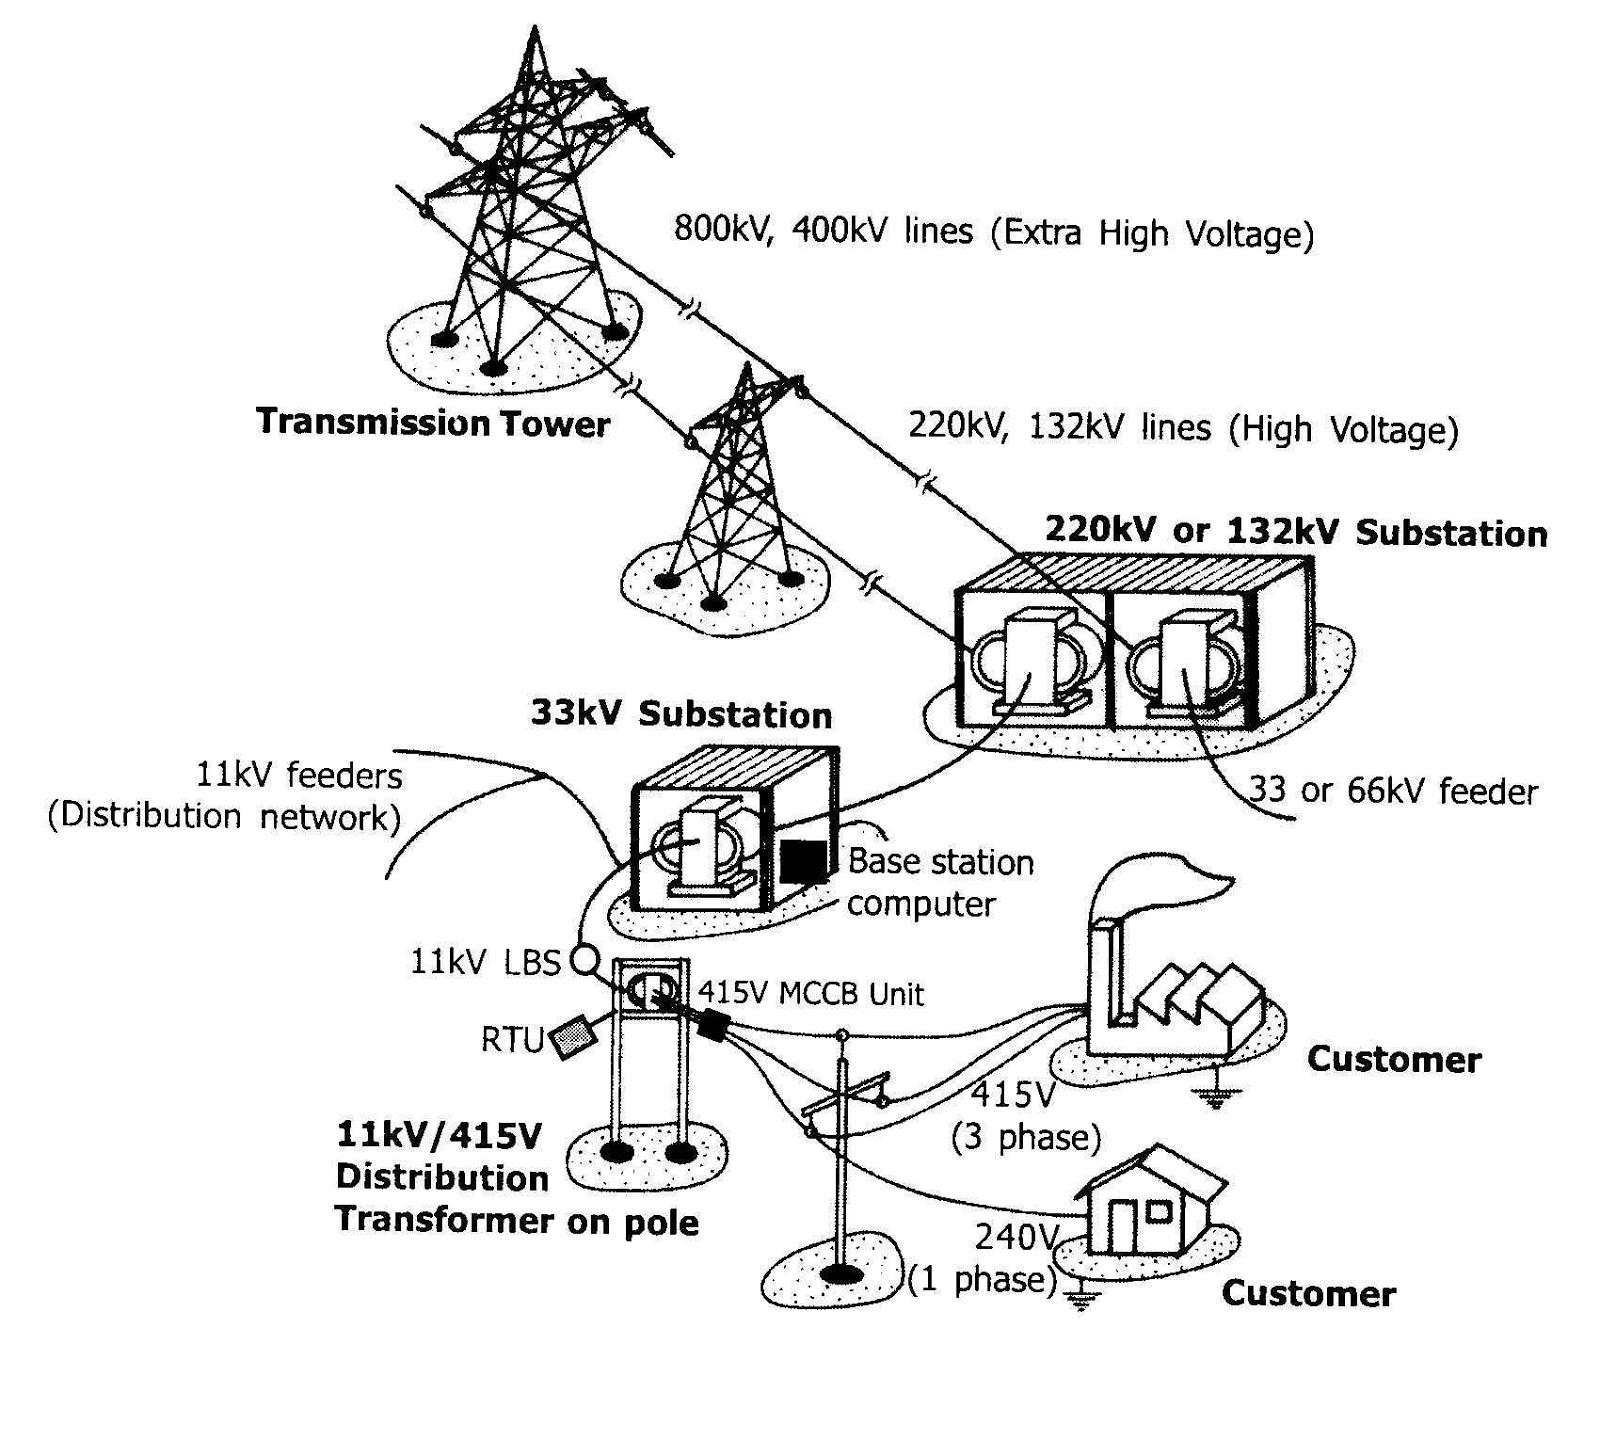 medium resolution of typical power transmission and distribution scenario